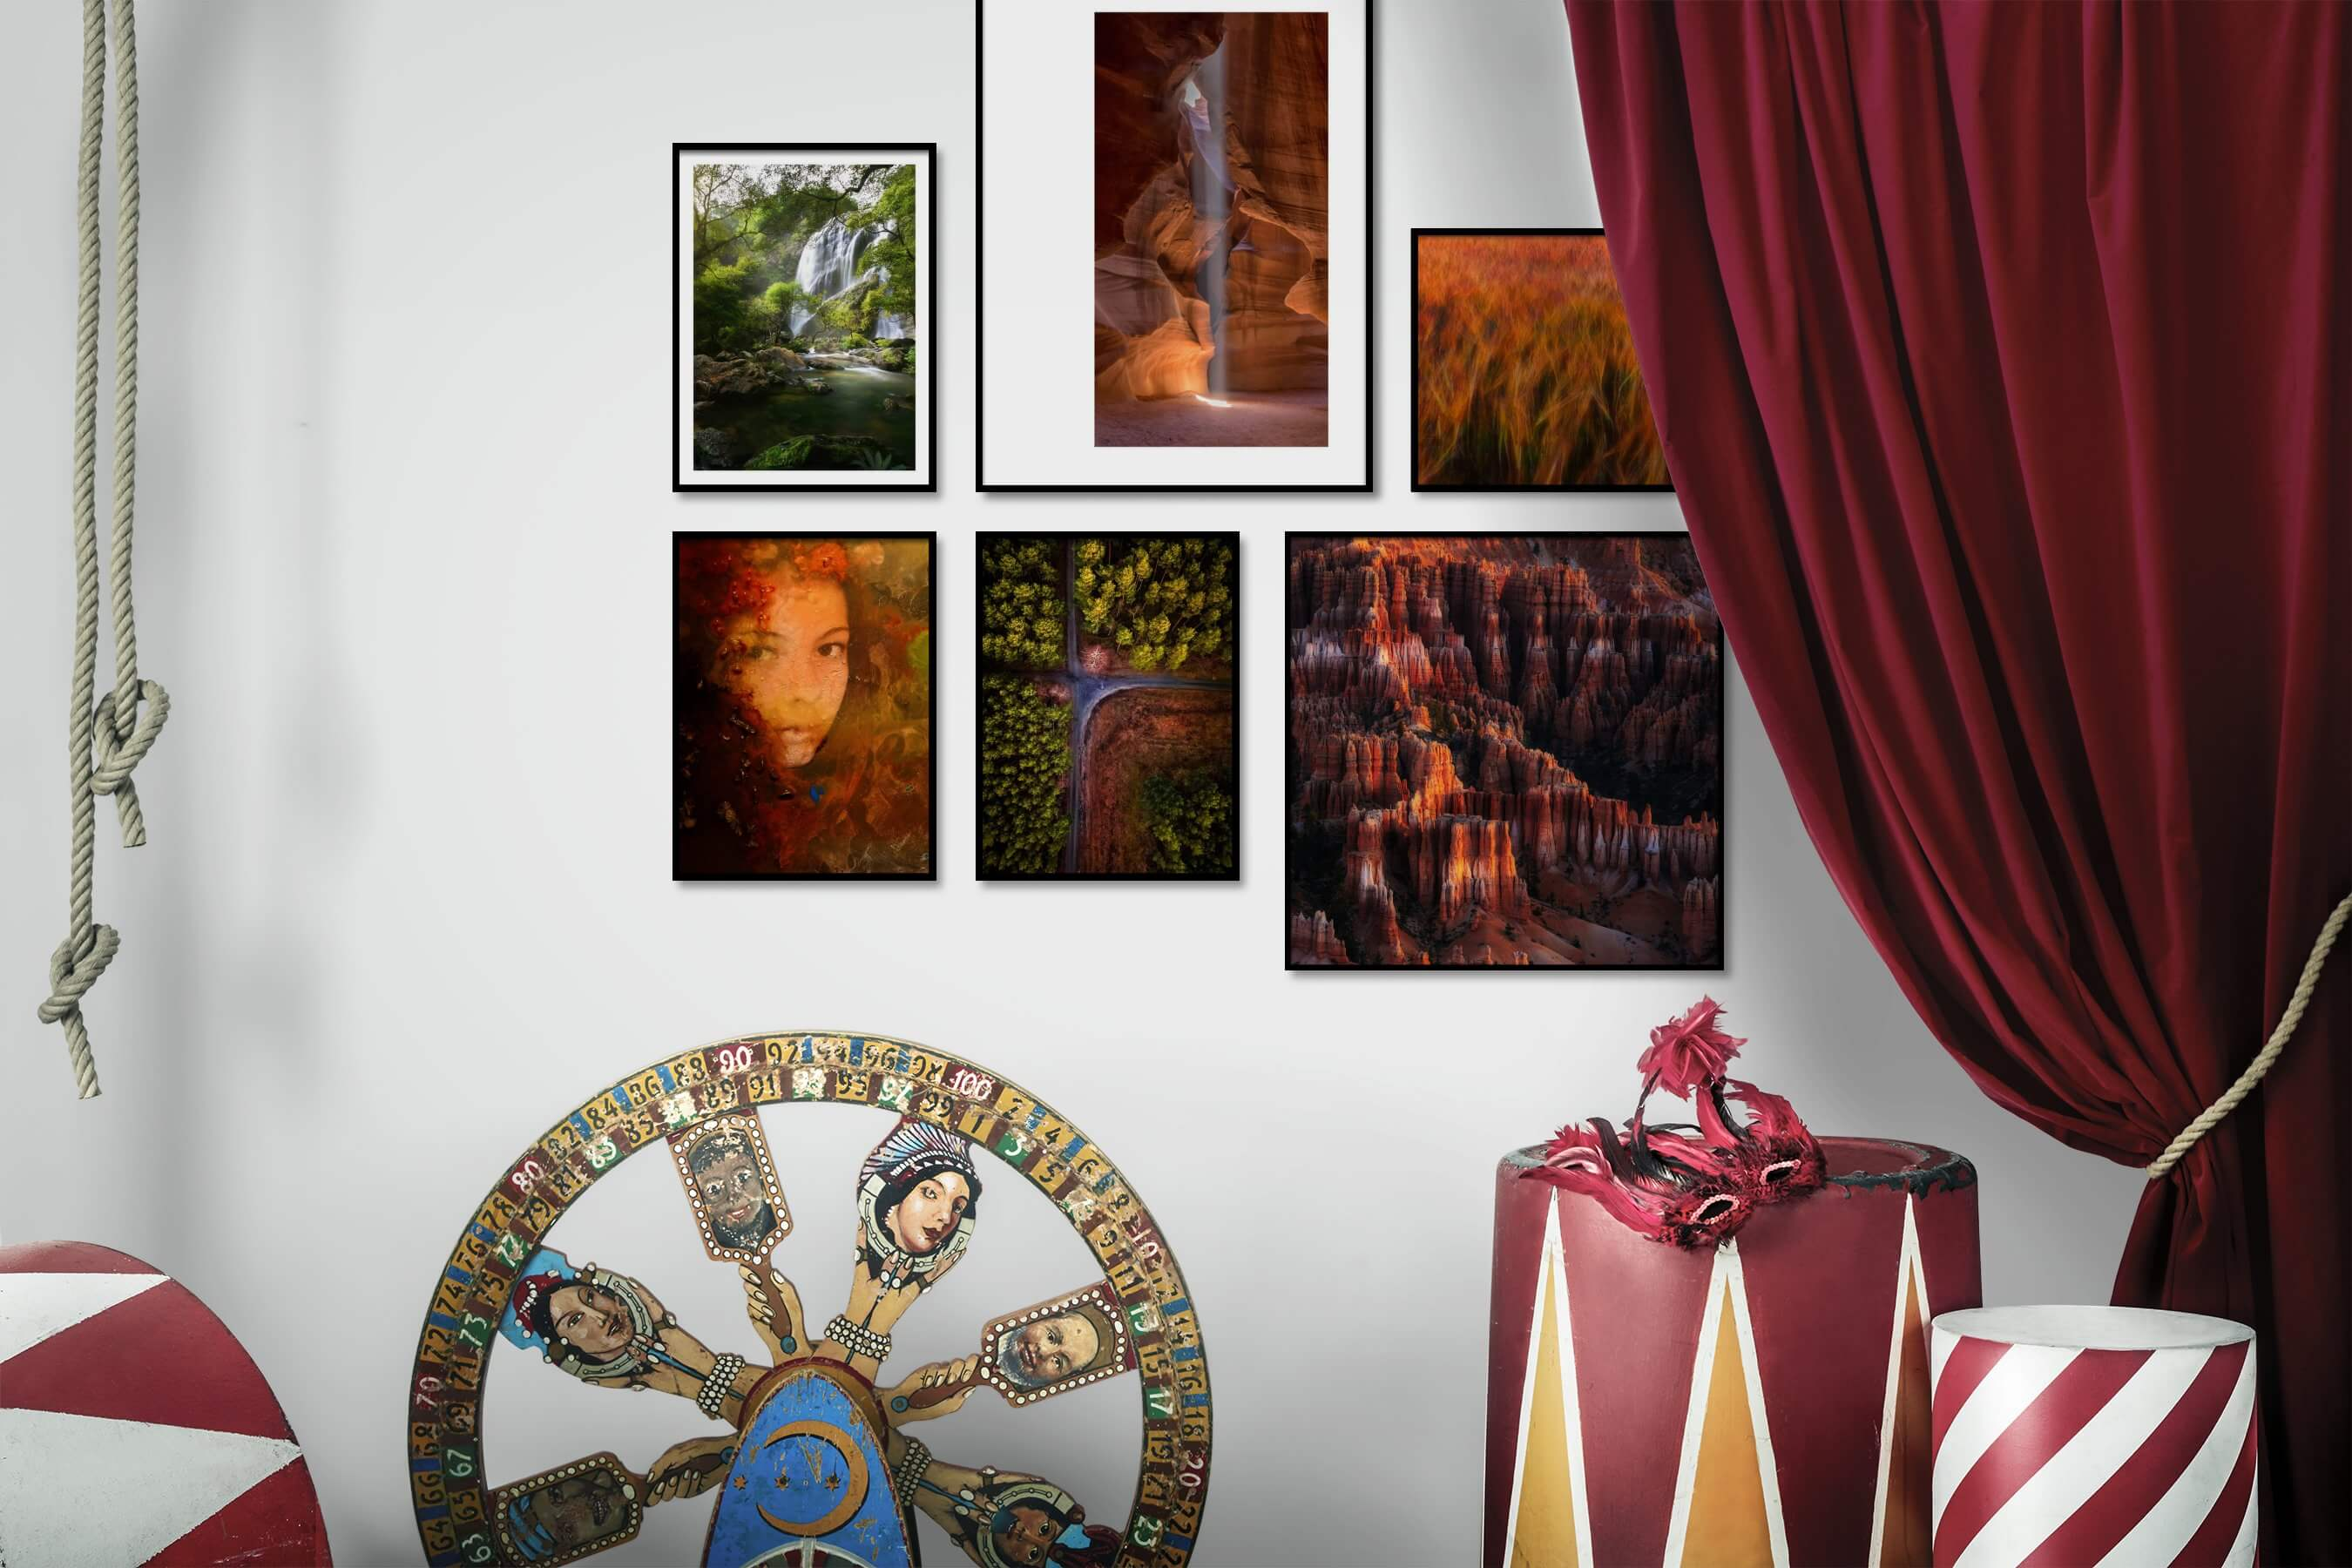 Gallery wall idea with six framed pictures arranged on a wall depicting Nature, Mindfulness, Artsy, For the Moderate, For the Maximalist, and Country Life